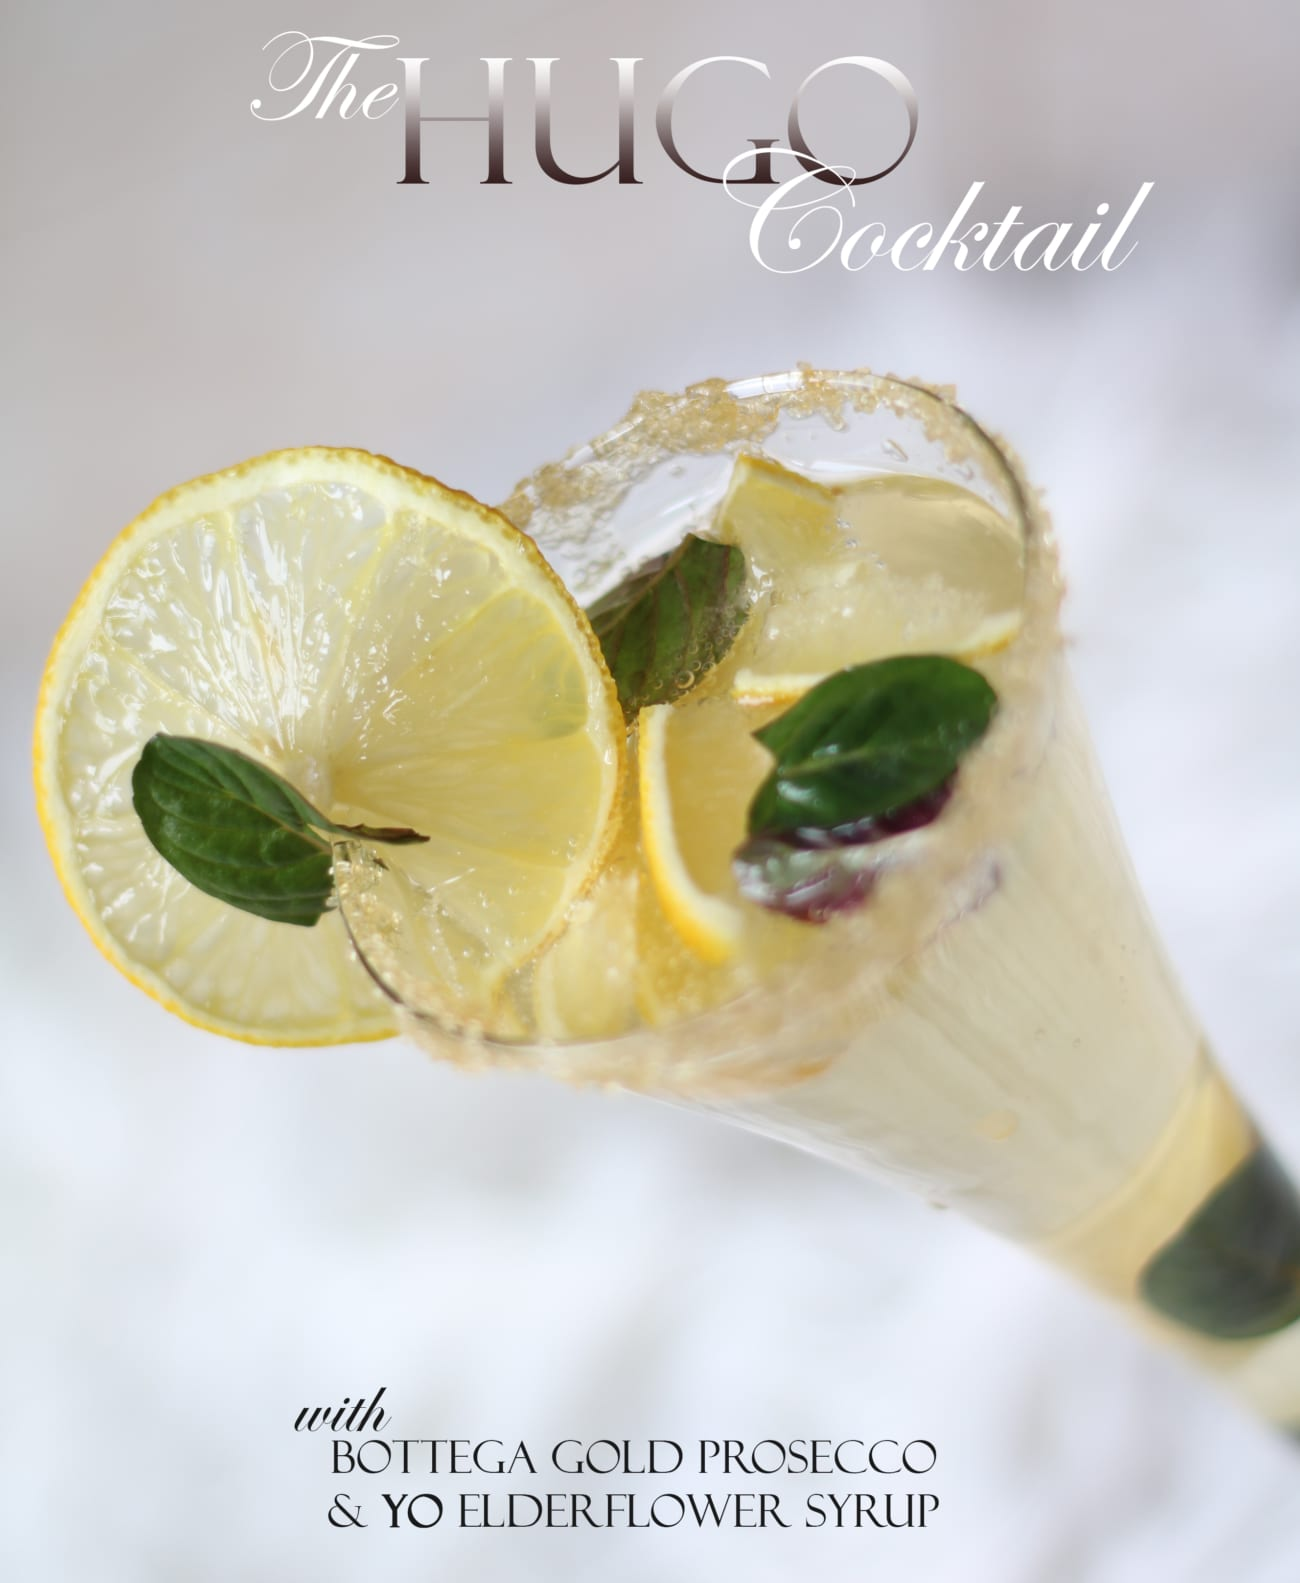 Home Afternoons: The HUGO Cocktail Reinvented